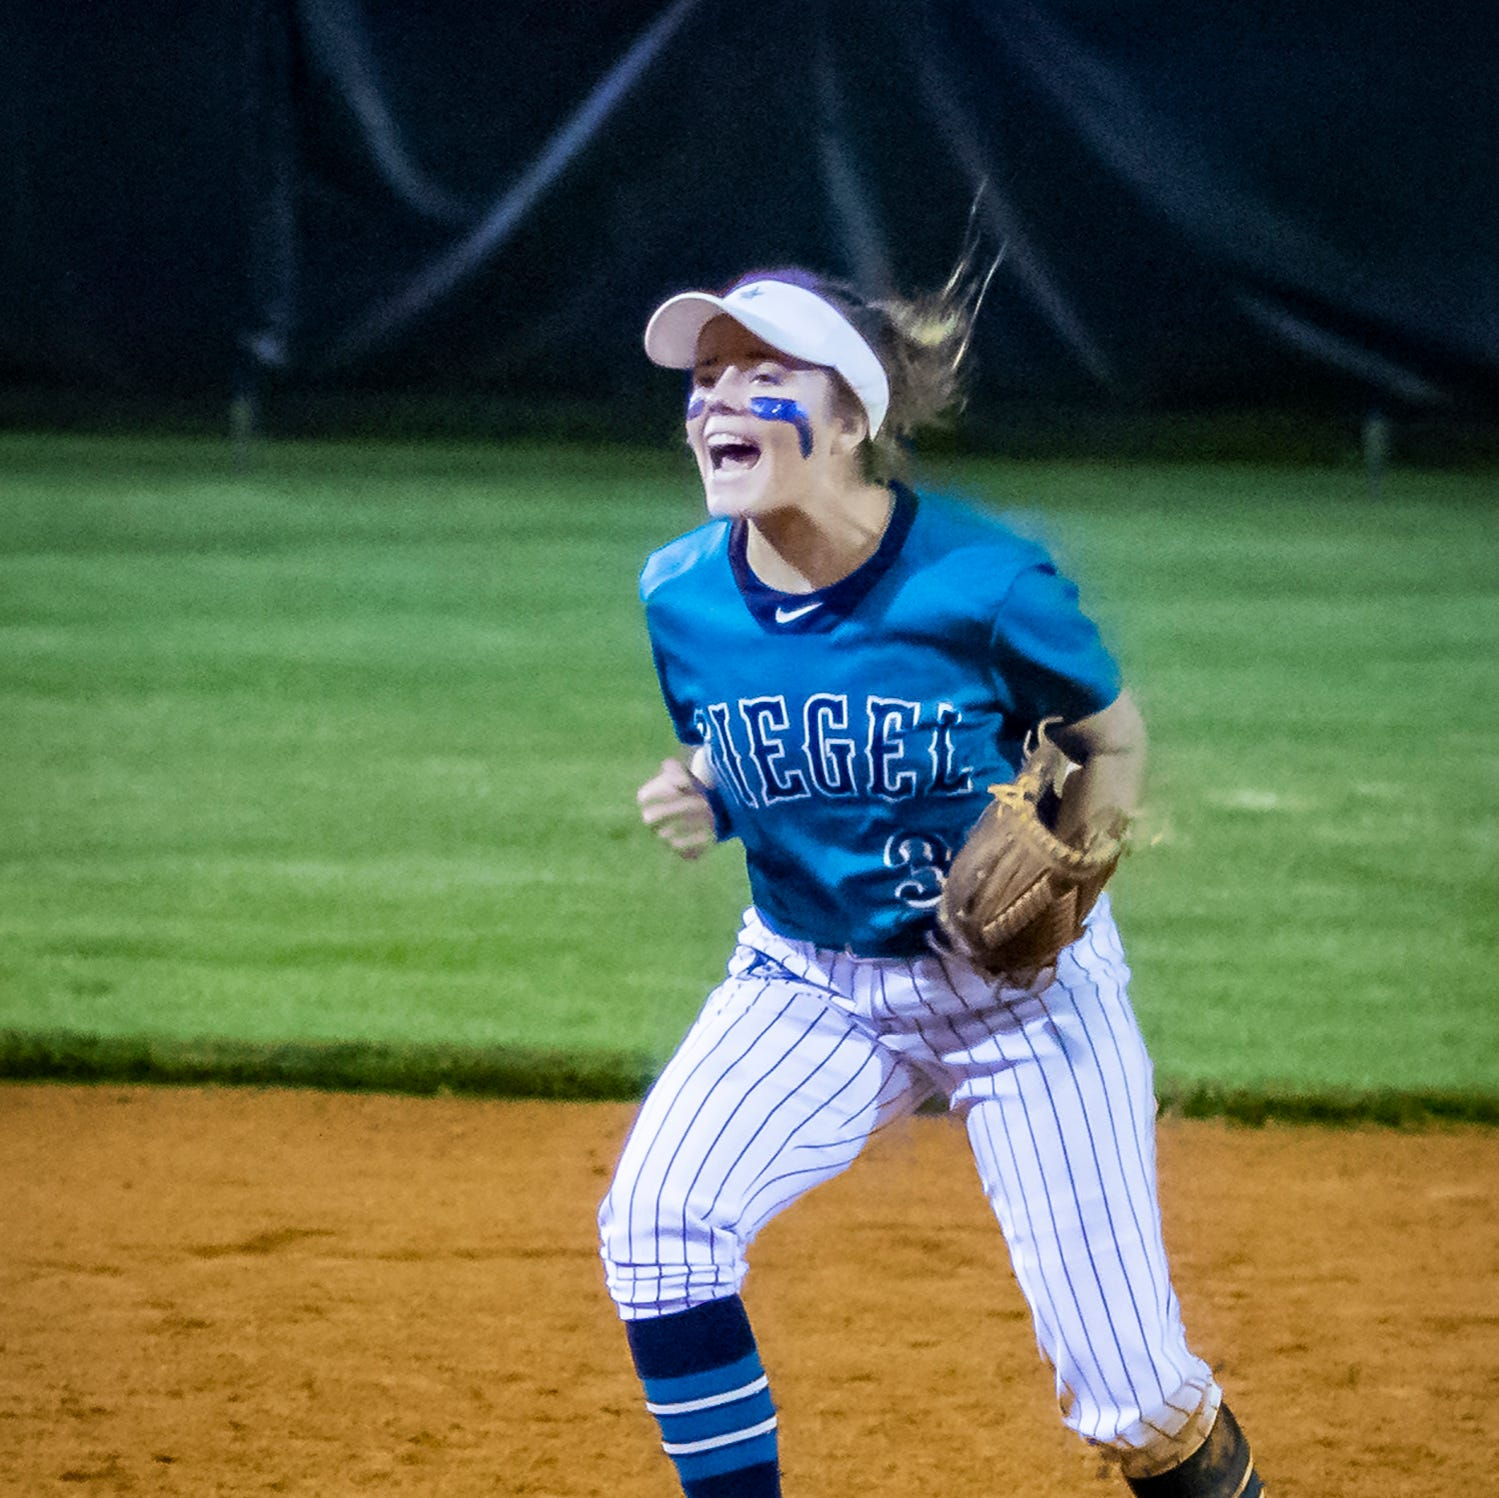 Revenge-minded Siegel softball team not haunted by last season's ghosts